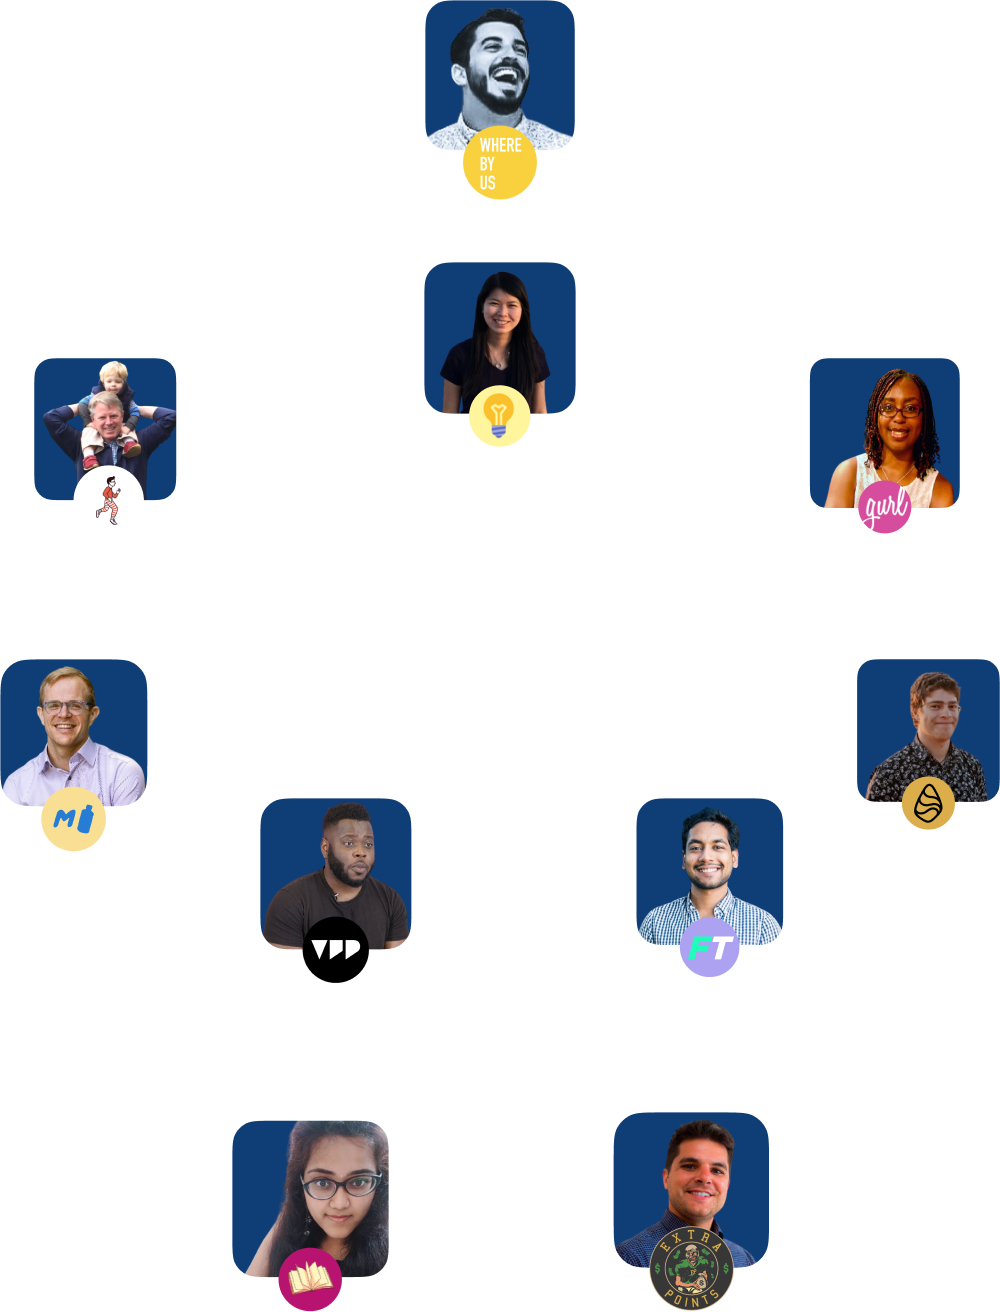 Newsletter Crew - A community of newsletter writers